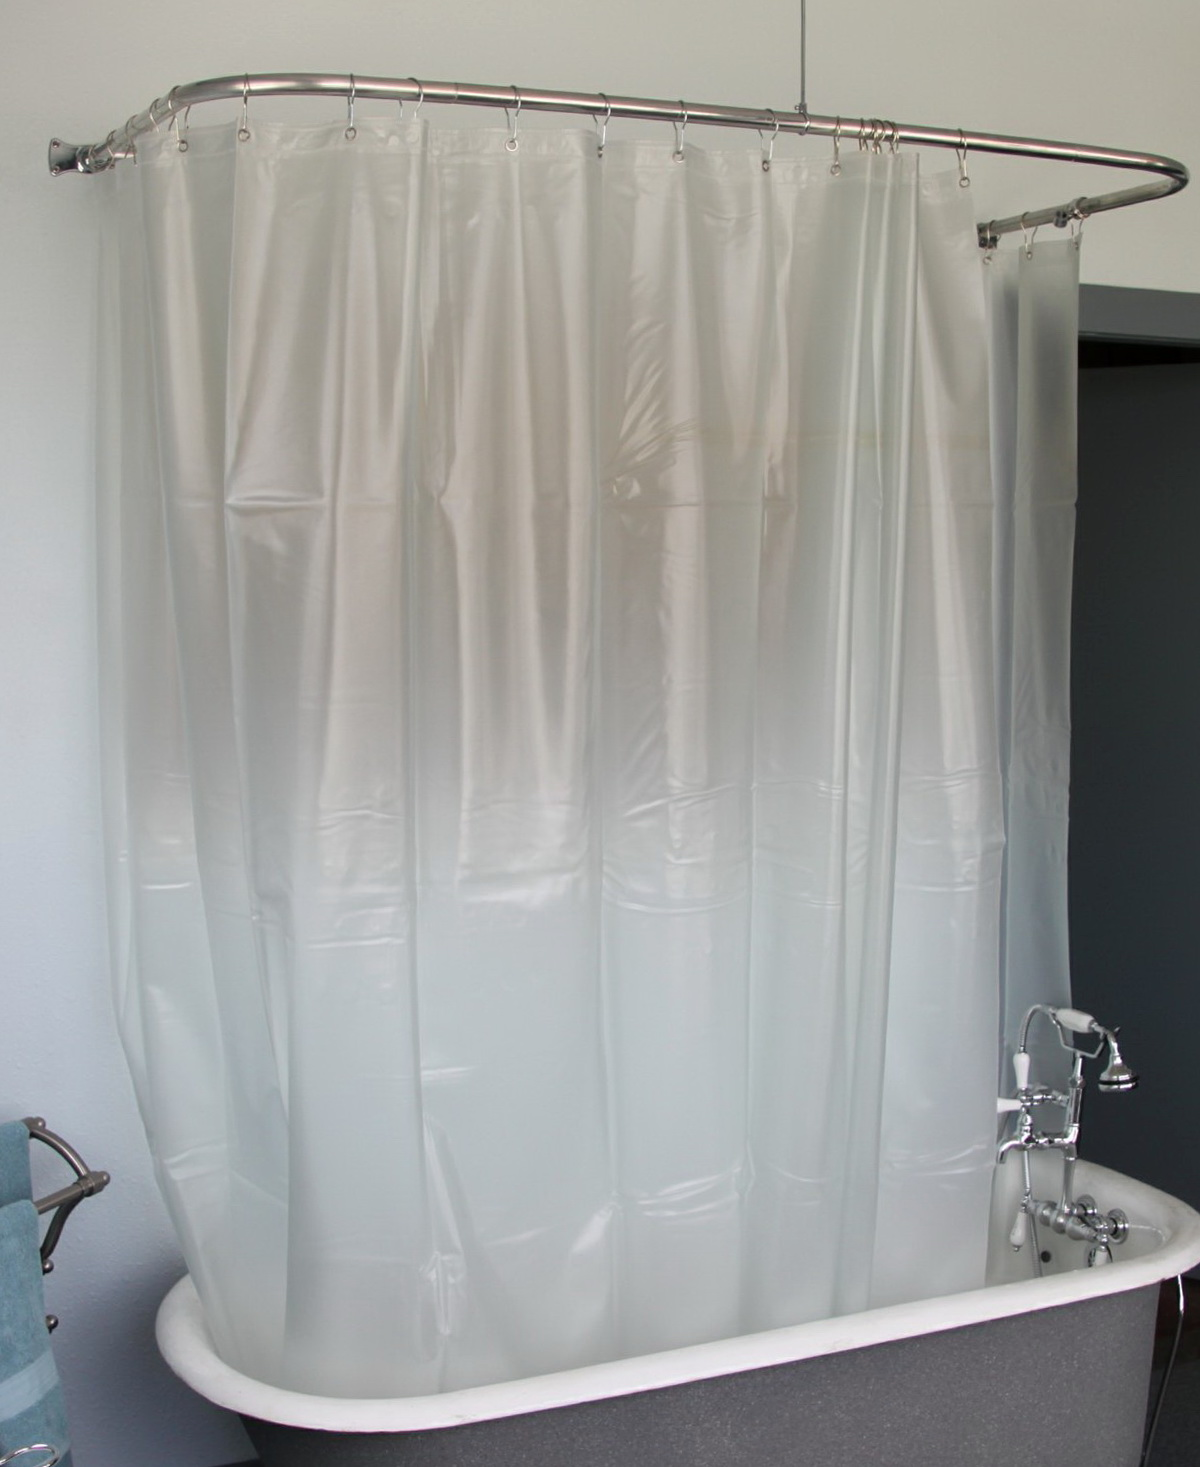 Commercial Shower Curtains Uk Home Design Ideas